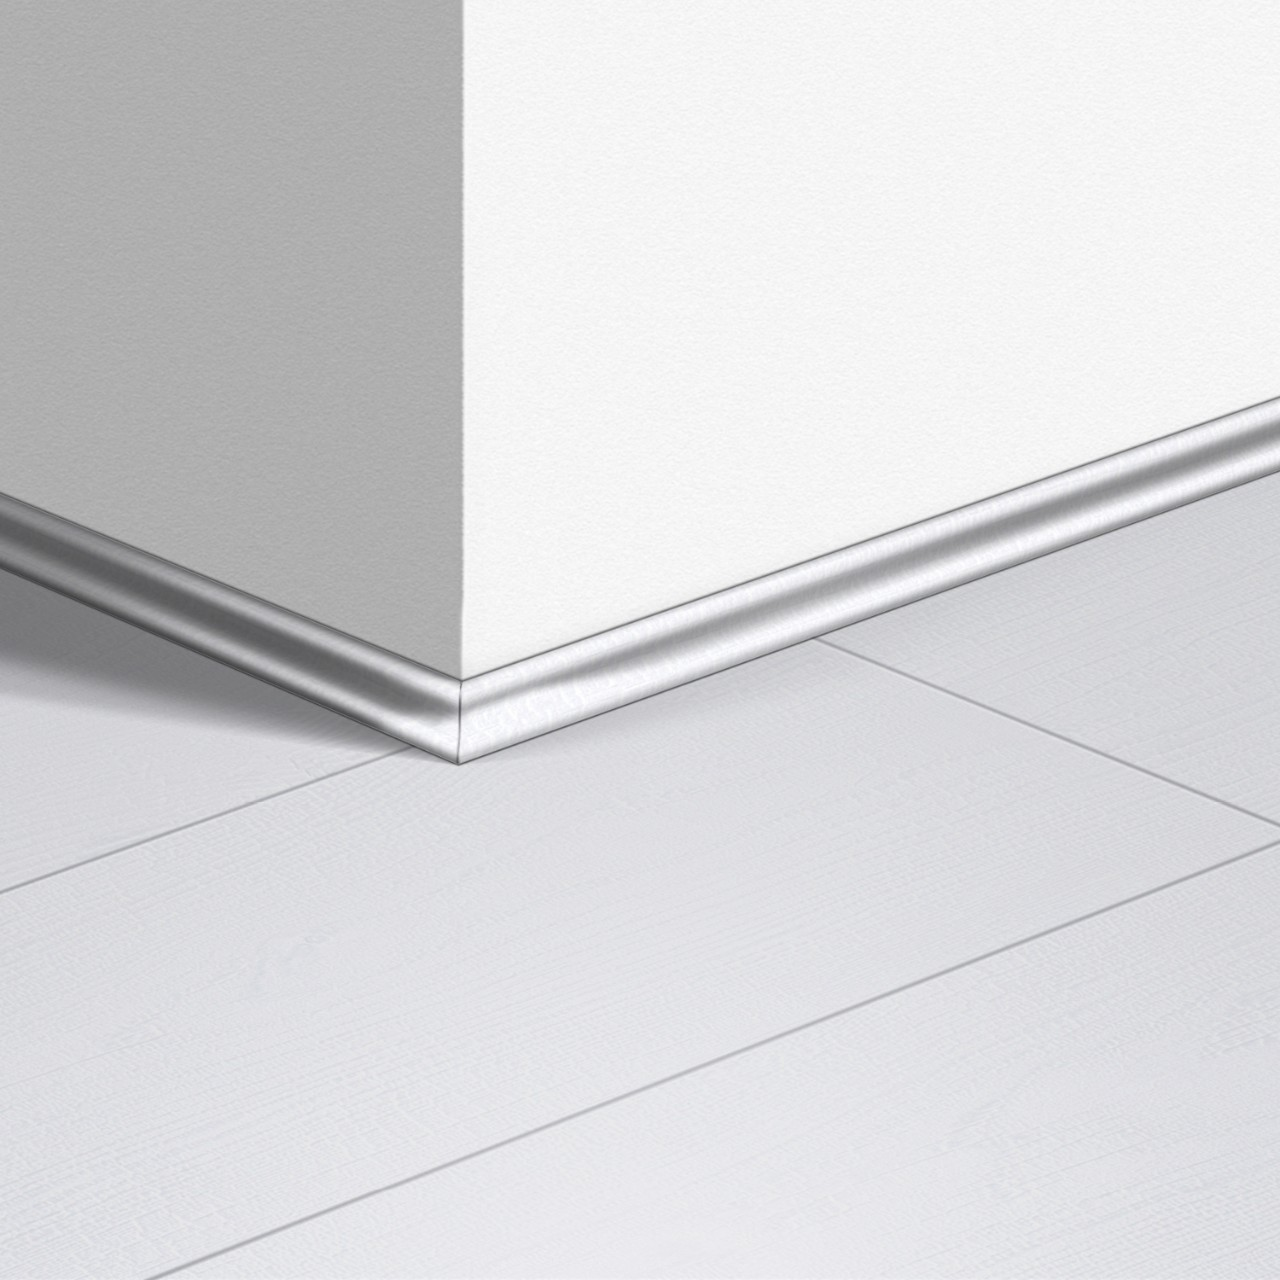 QSSCOT Laminate Accessories White planks QSSCOT01859